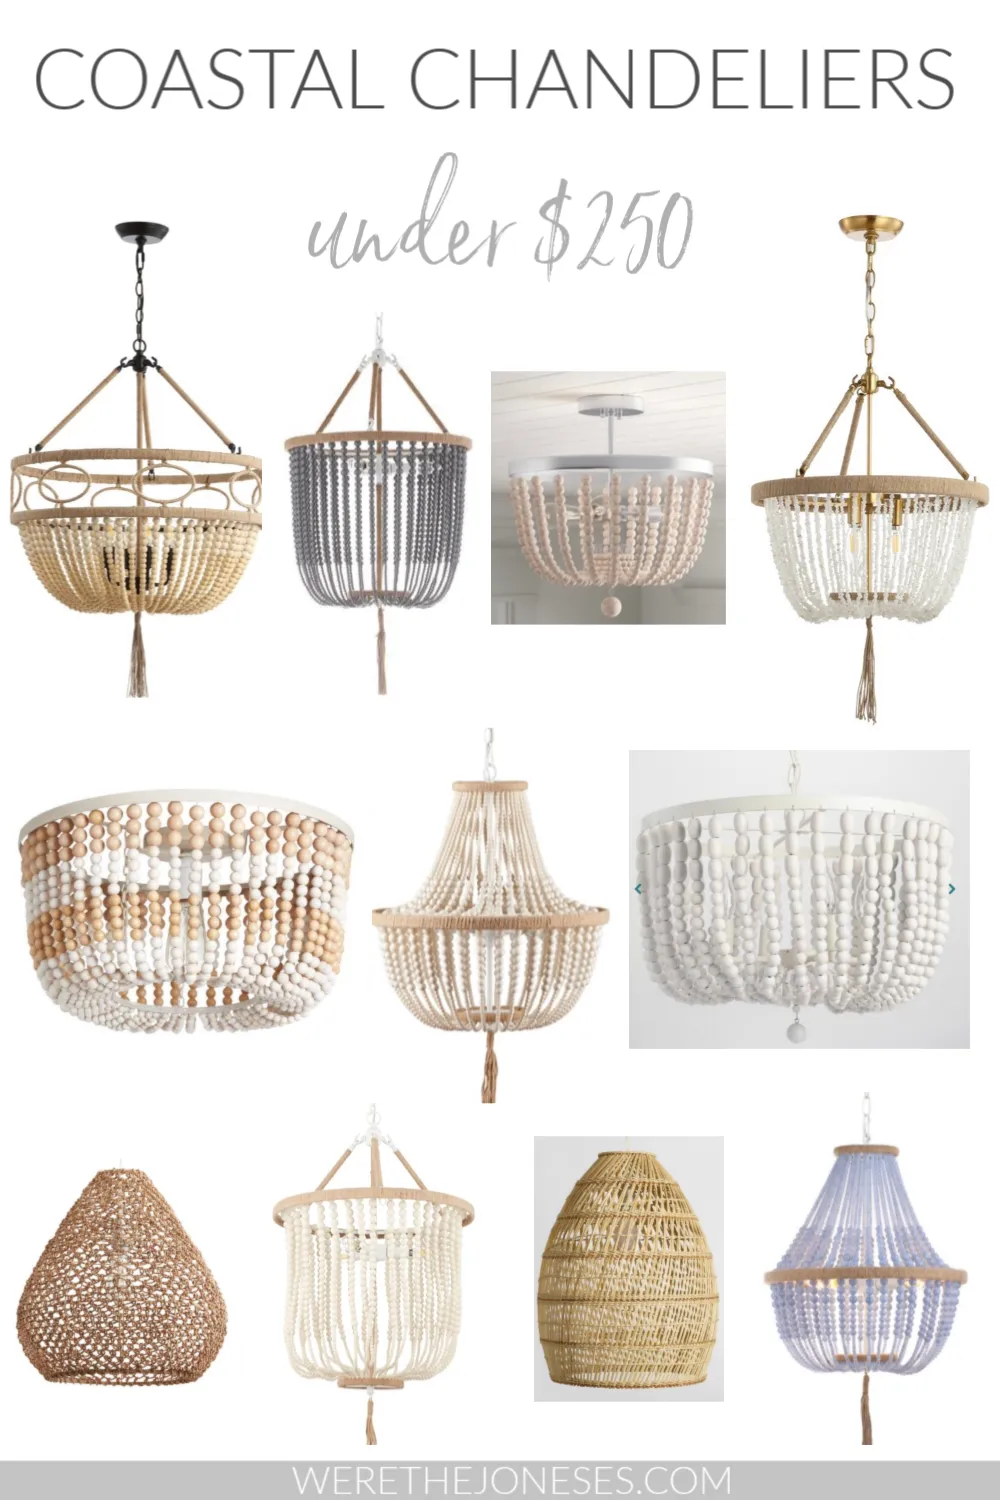 Coastal chandelier light fixture ideas under $250! Affordable beach house lighting for your modern coastal living room, bedroom, and kitchen.